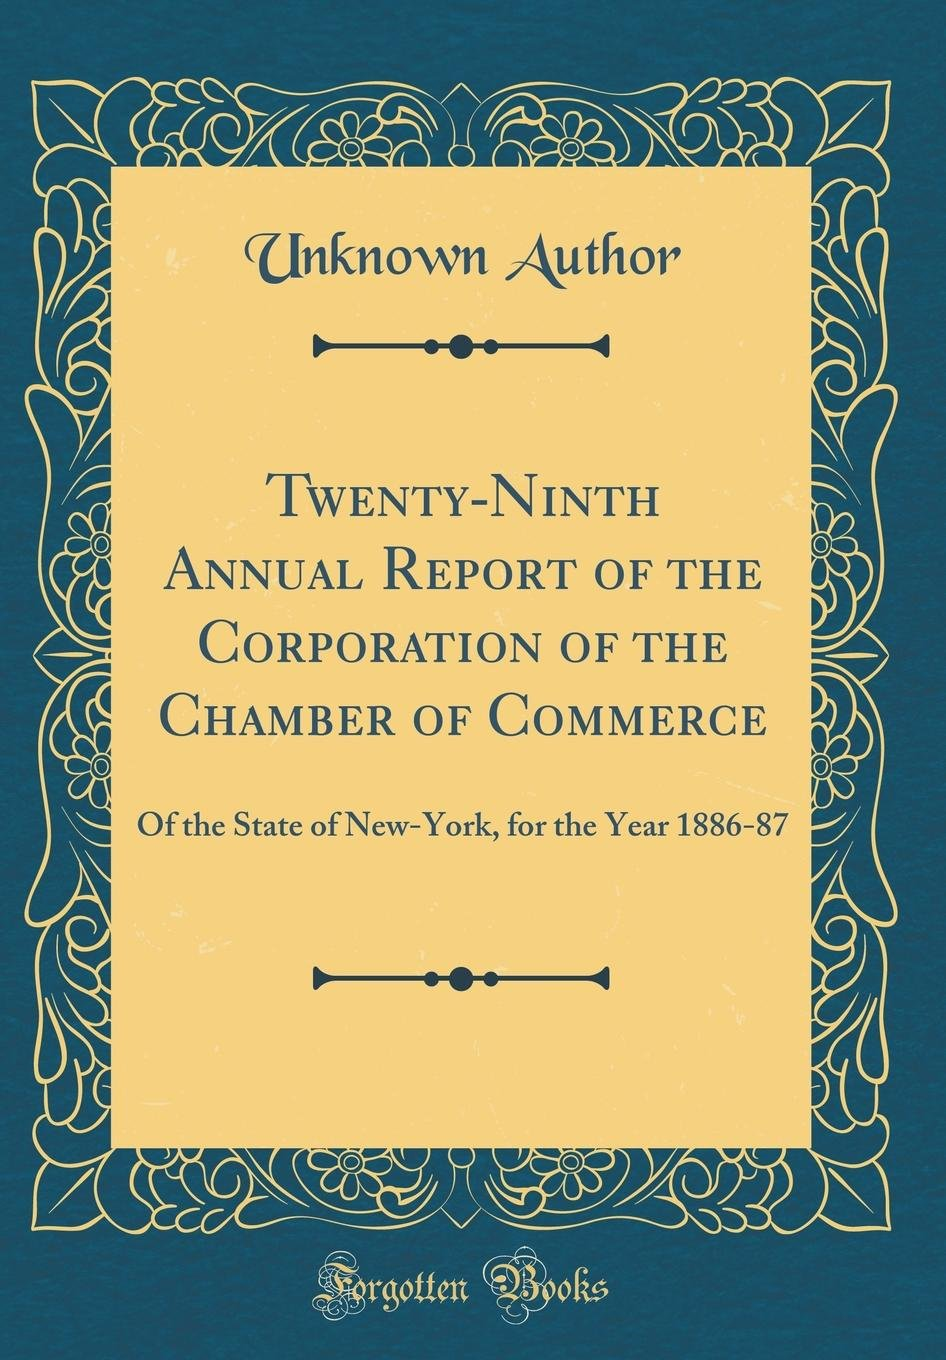 Download Twenty-Ninth Annual Report of the Corporation of the Chamber of Commerce: Of the State of New-York, for the Year 1886-87 (Classic Reprint) pdf